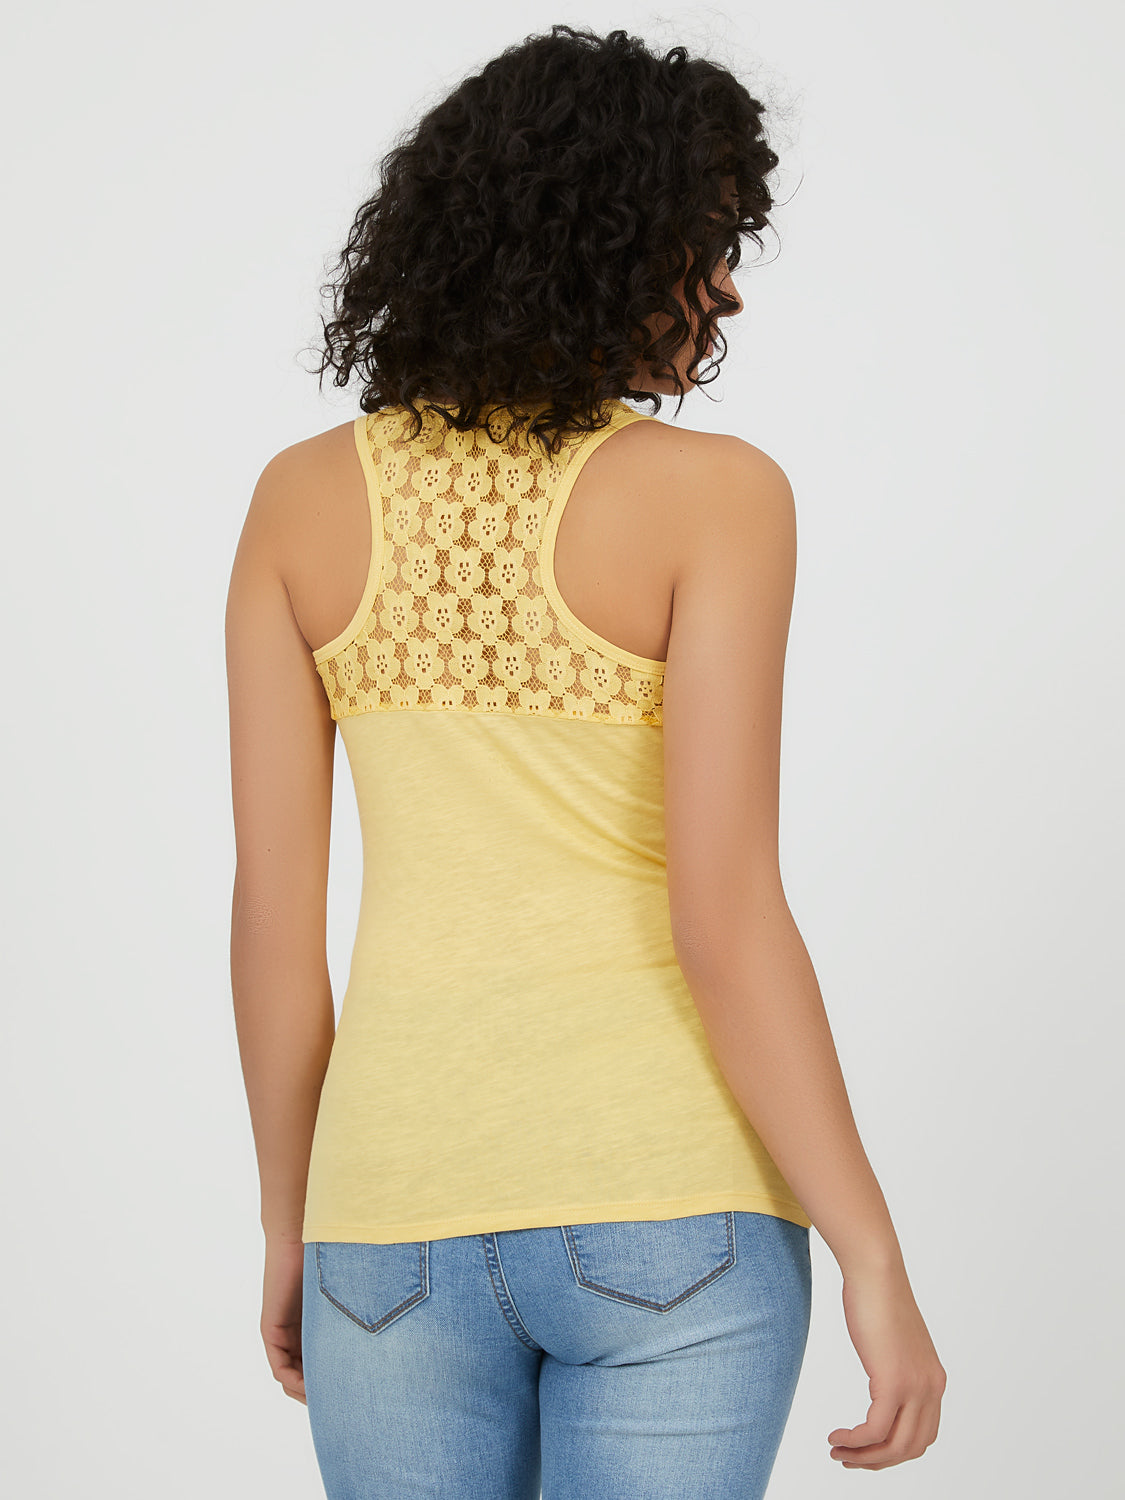 Sleeveless Flower Lace Racerback Tank Top